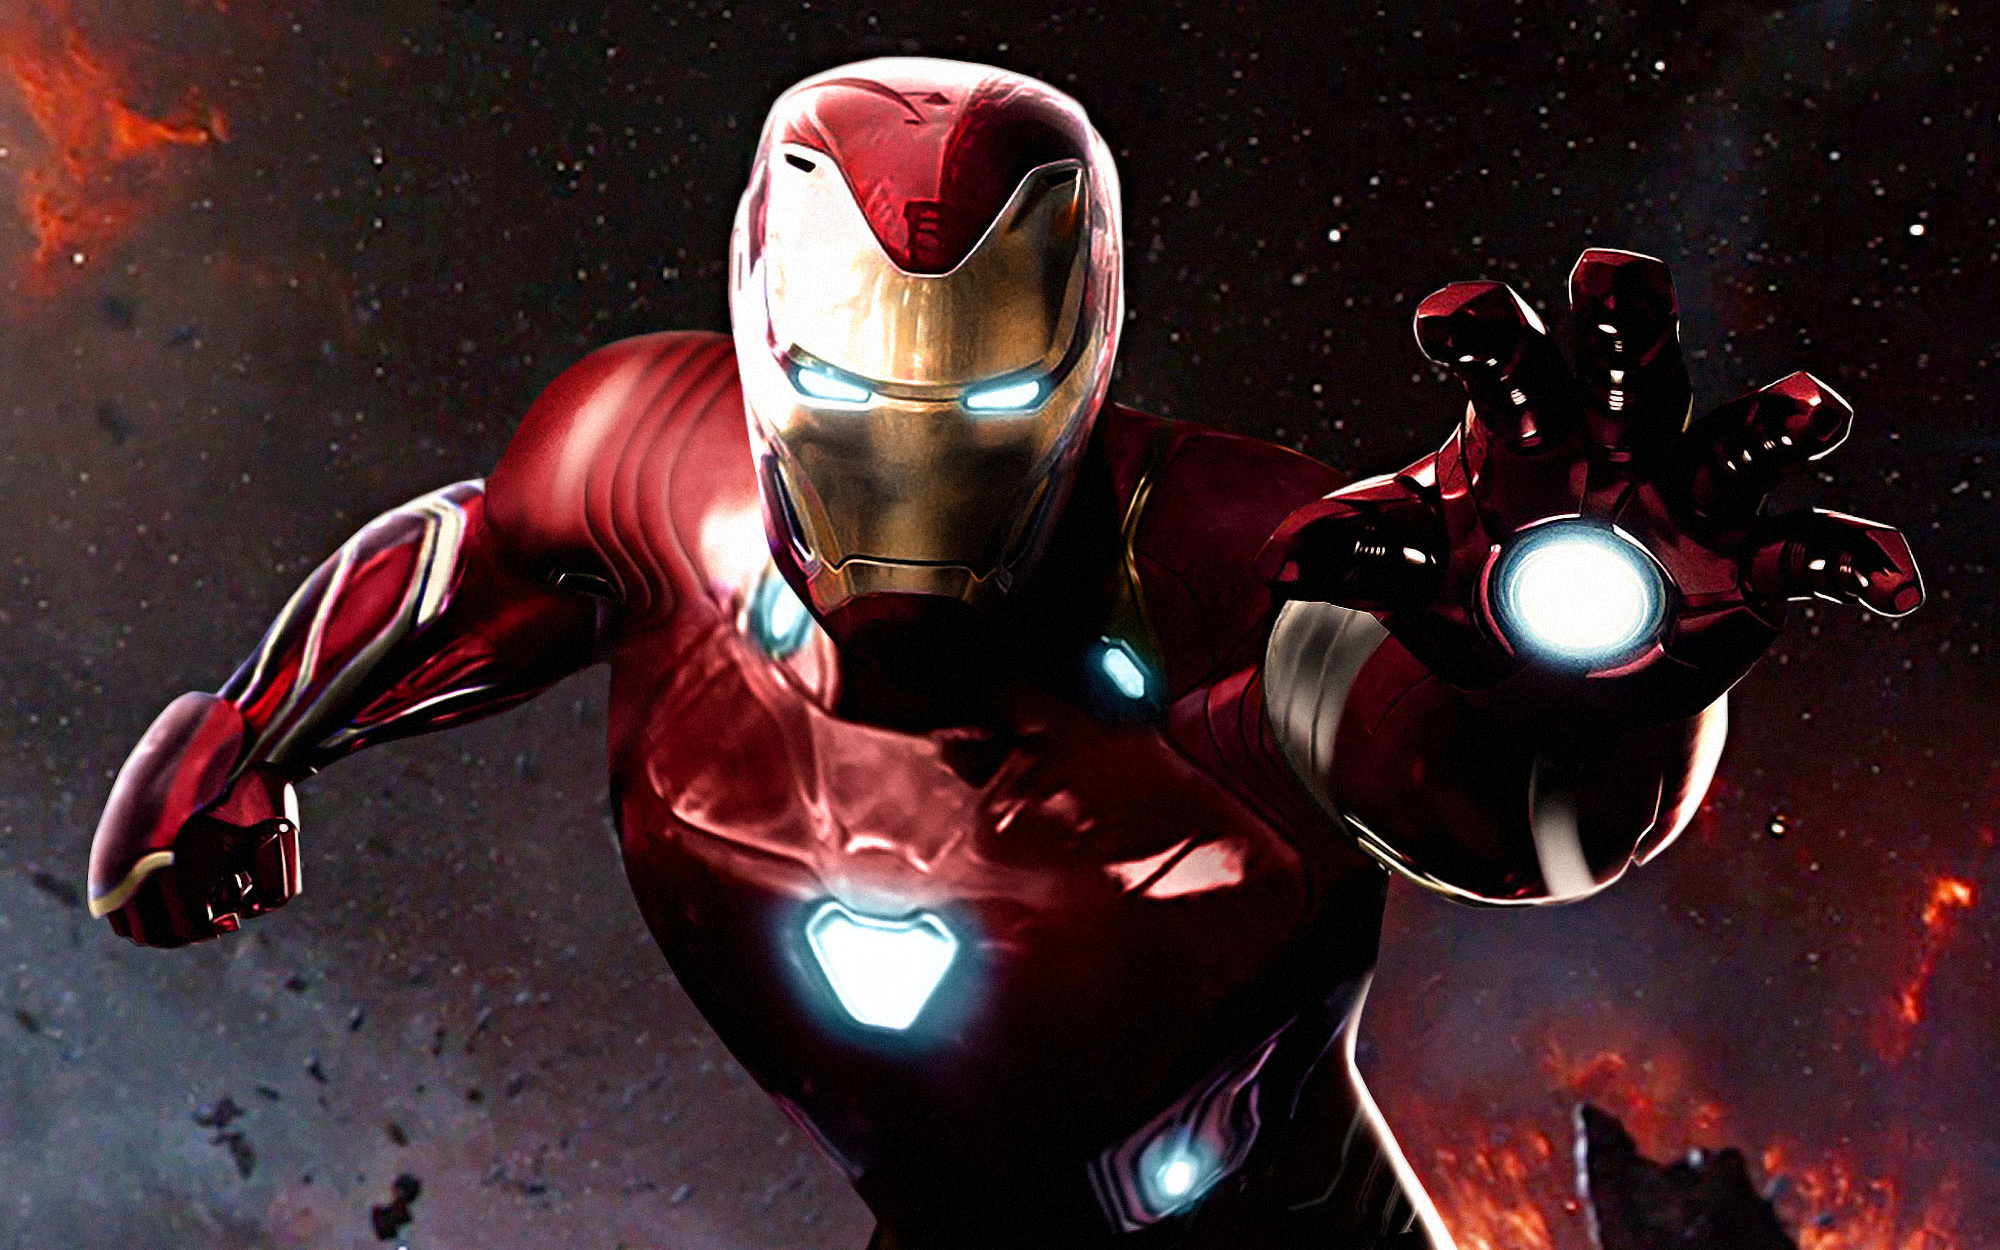 Iron Man Avengers Infinity War Hd Wallpaper Iron Man